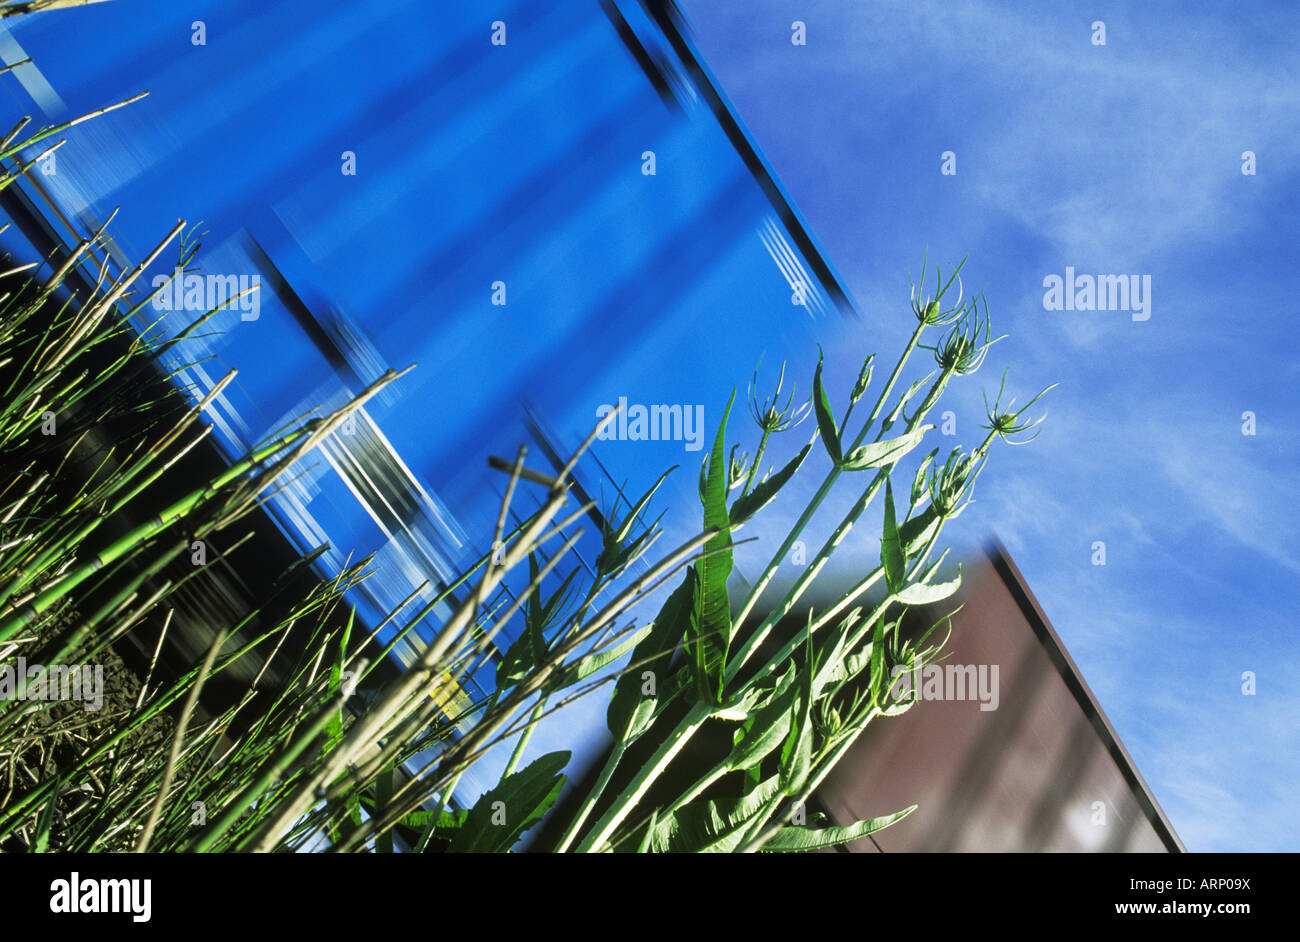 Freight train with motion blur from low angle in grasses - Stock Image